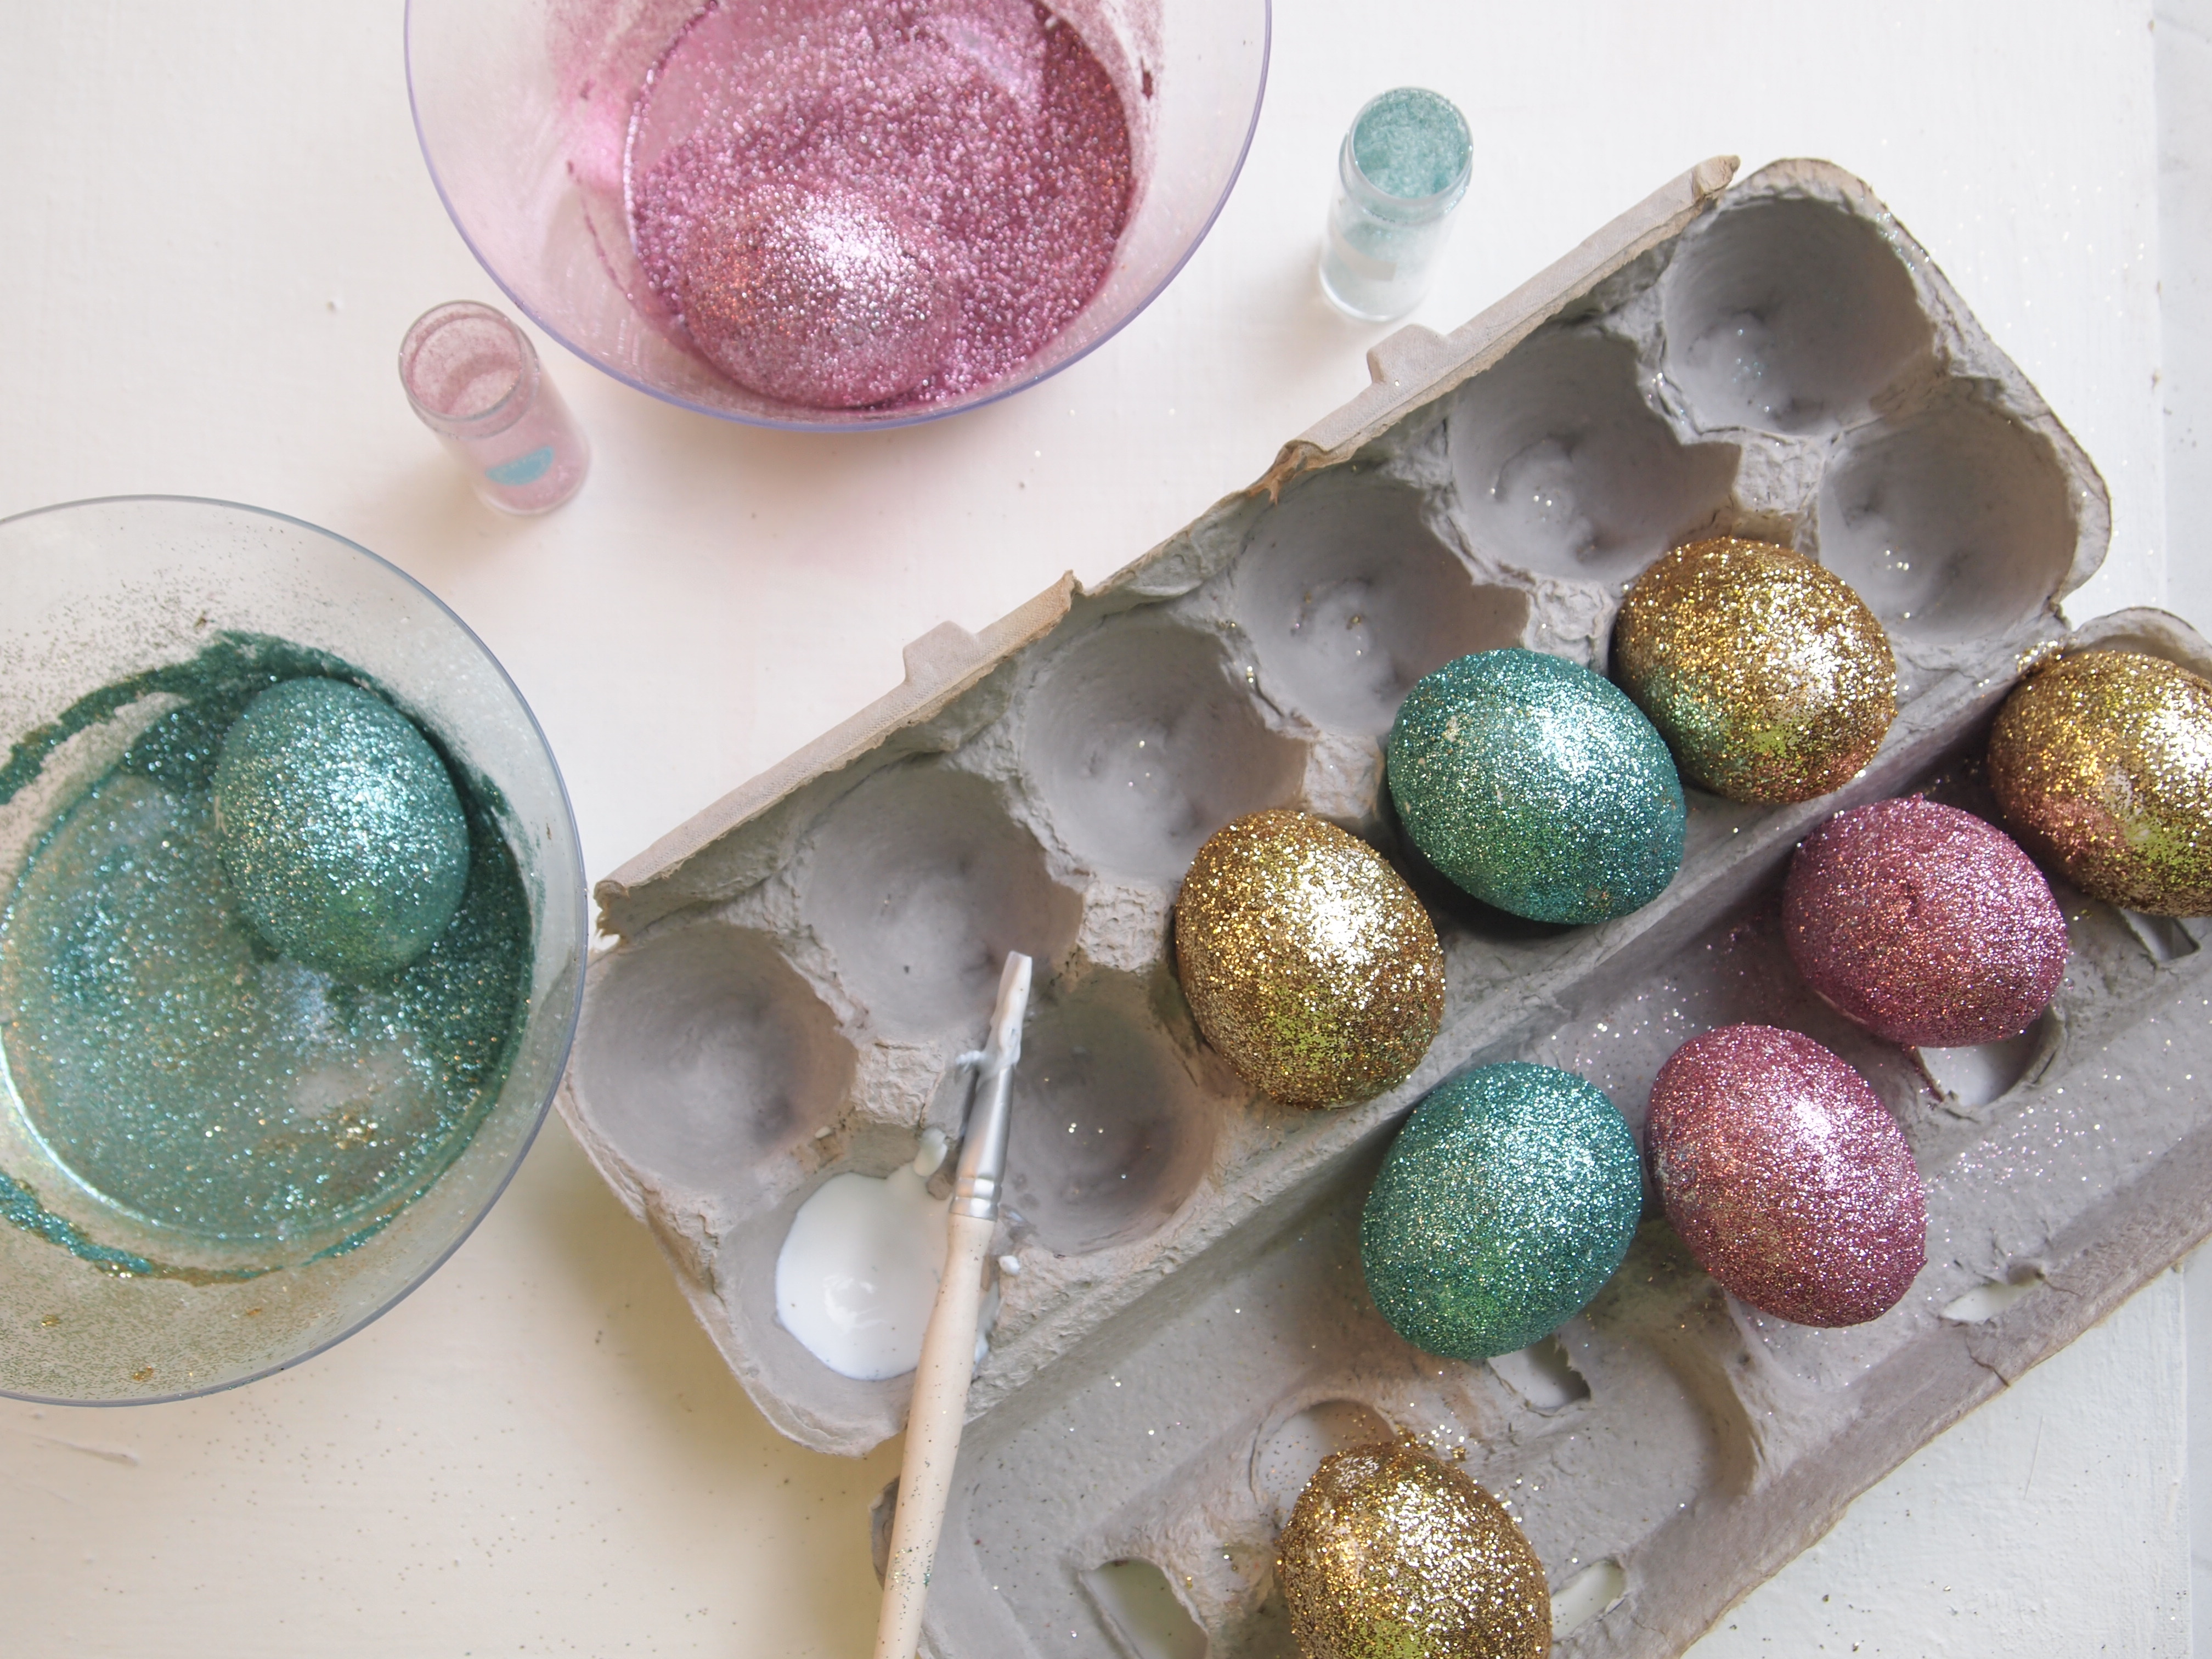 Click here to check out more creative egg decorating ideas on my